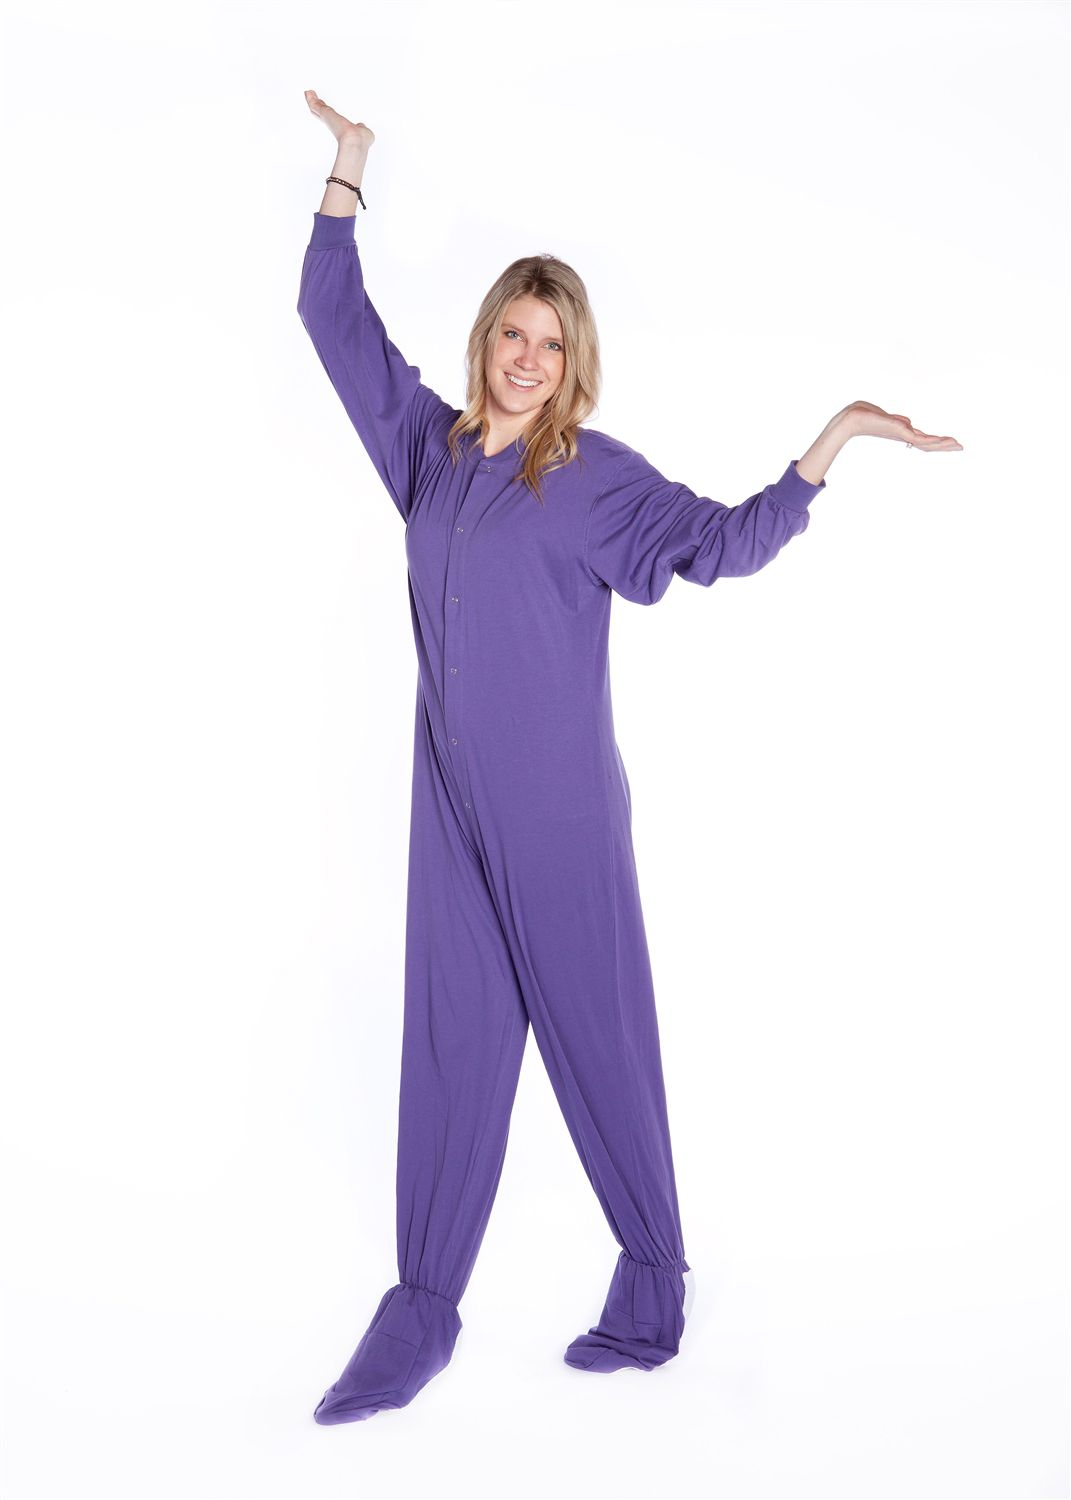 ddc35d4b52c5 Big Feet Pajama Co purple jersey knit onesie footed pajama has been ...